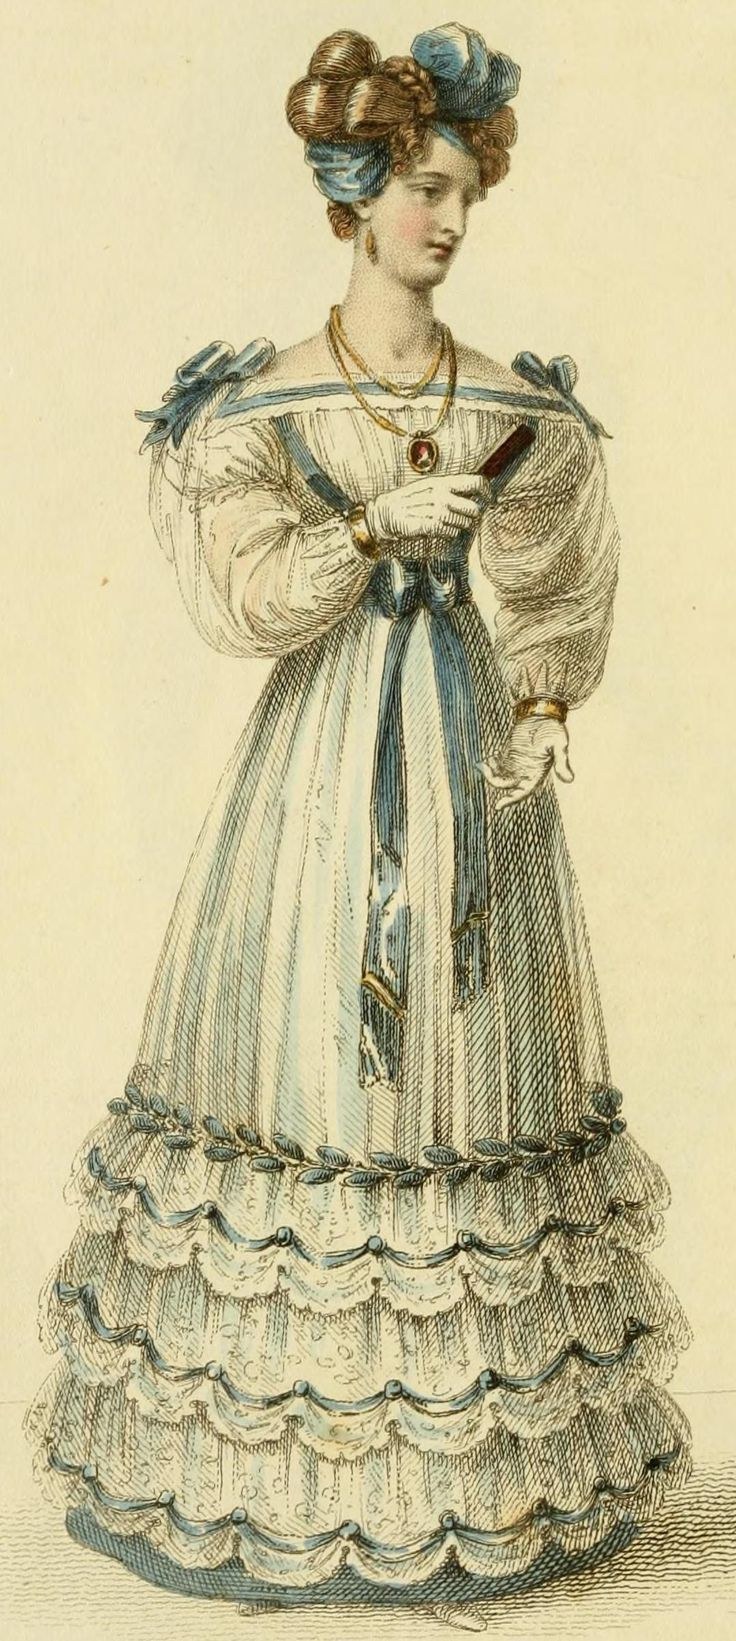 Ackermann's Repository of Arts: November 1826 https://openlibrary.org/books/OL25491219M/The_Repository_of_arts_literature_commerce_manufactures_fashions_and_politics